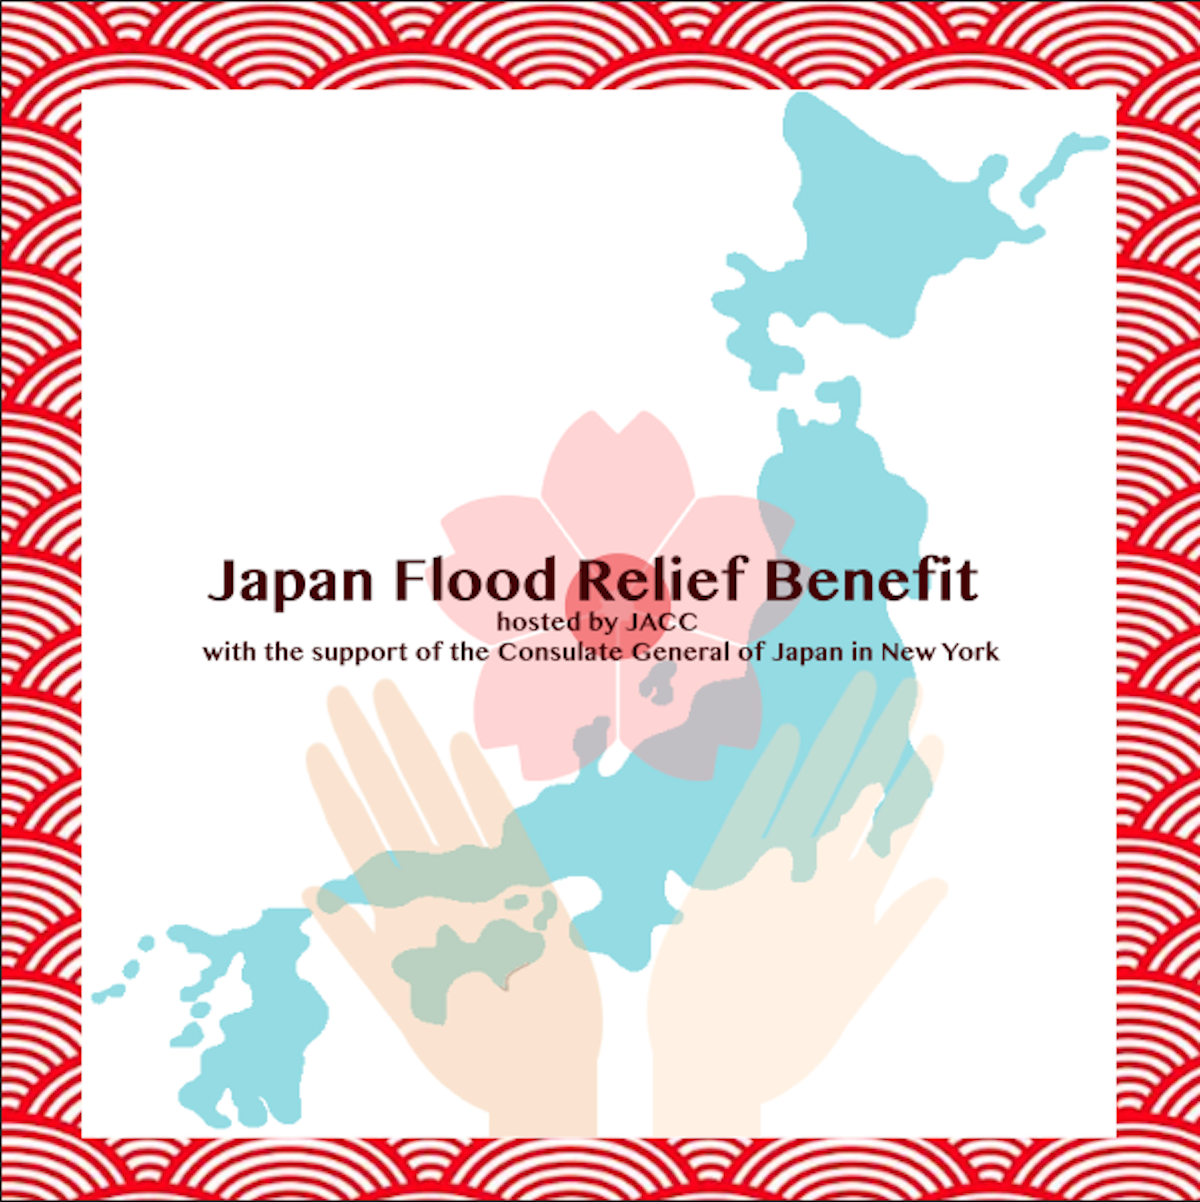 JACC, Japanese community, NYC, Japan, Western Japan, flooding, flood relief, benefit, fundraiser, OKA, Chef John McCarthy, HAA, JAA, JMSA, JETANNY, USJC, Consulate General of Japan in New York, New York Japanese Lions Club, JACL-NY